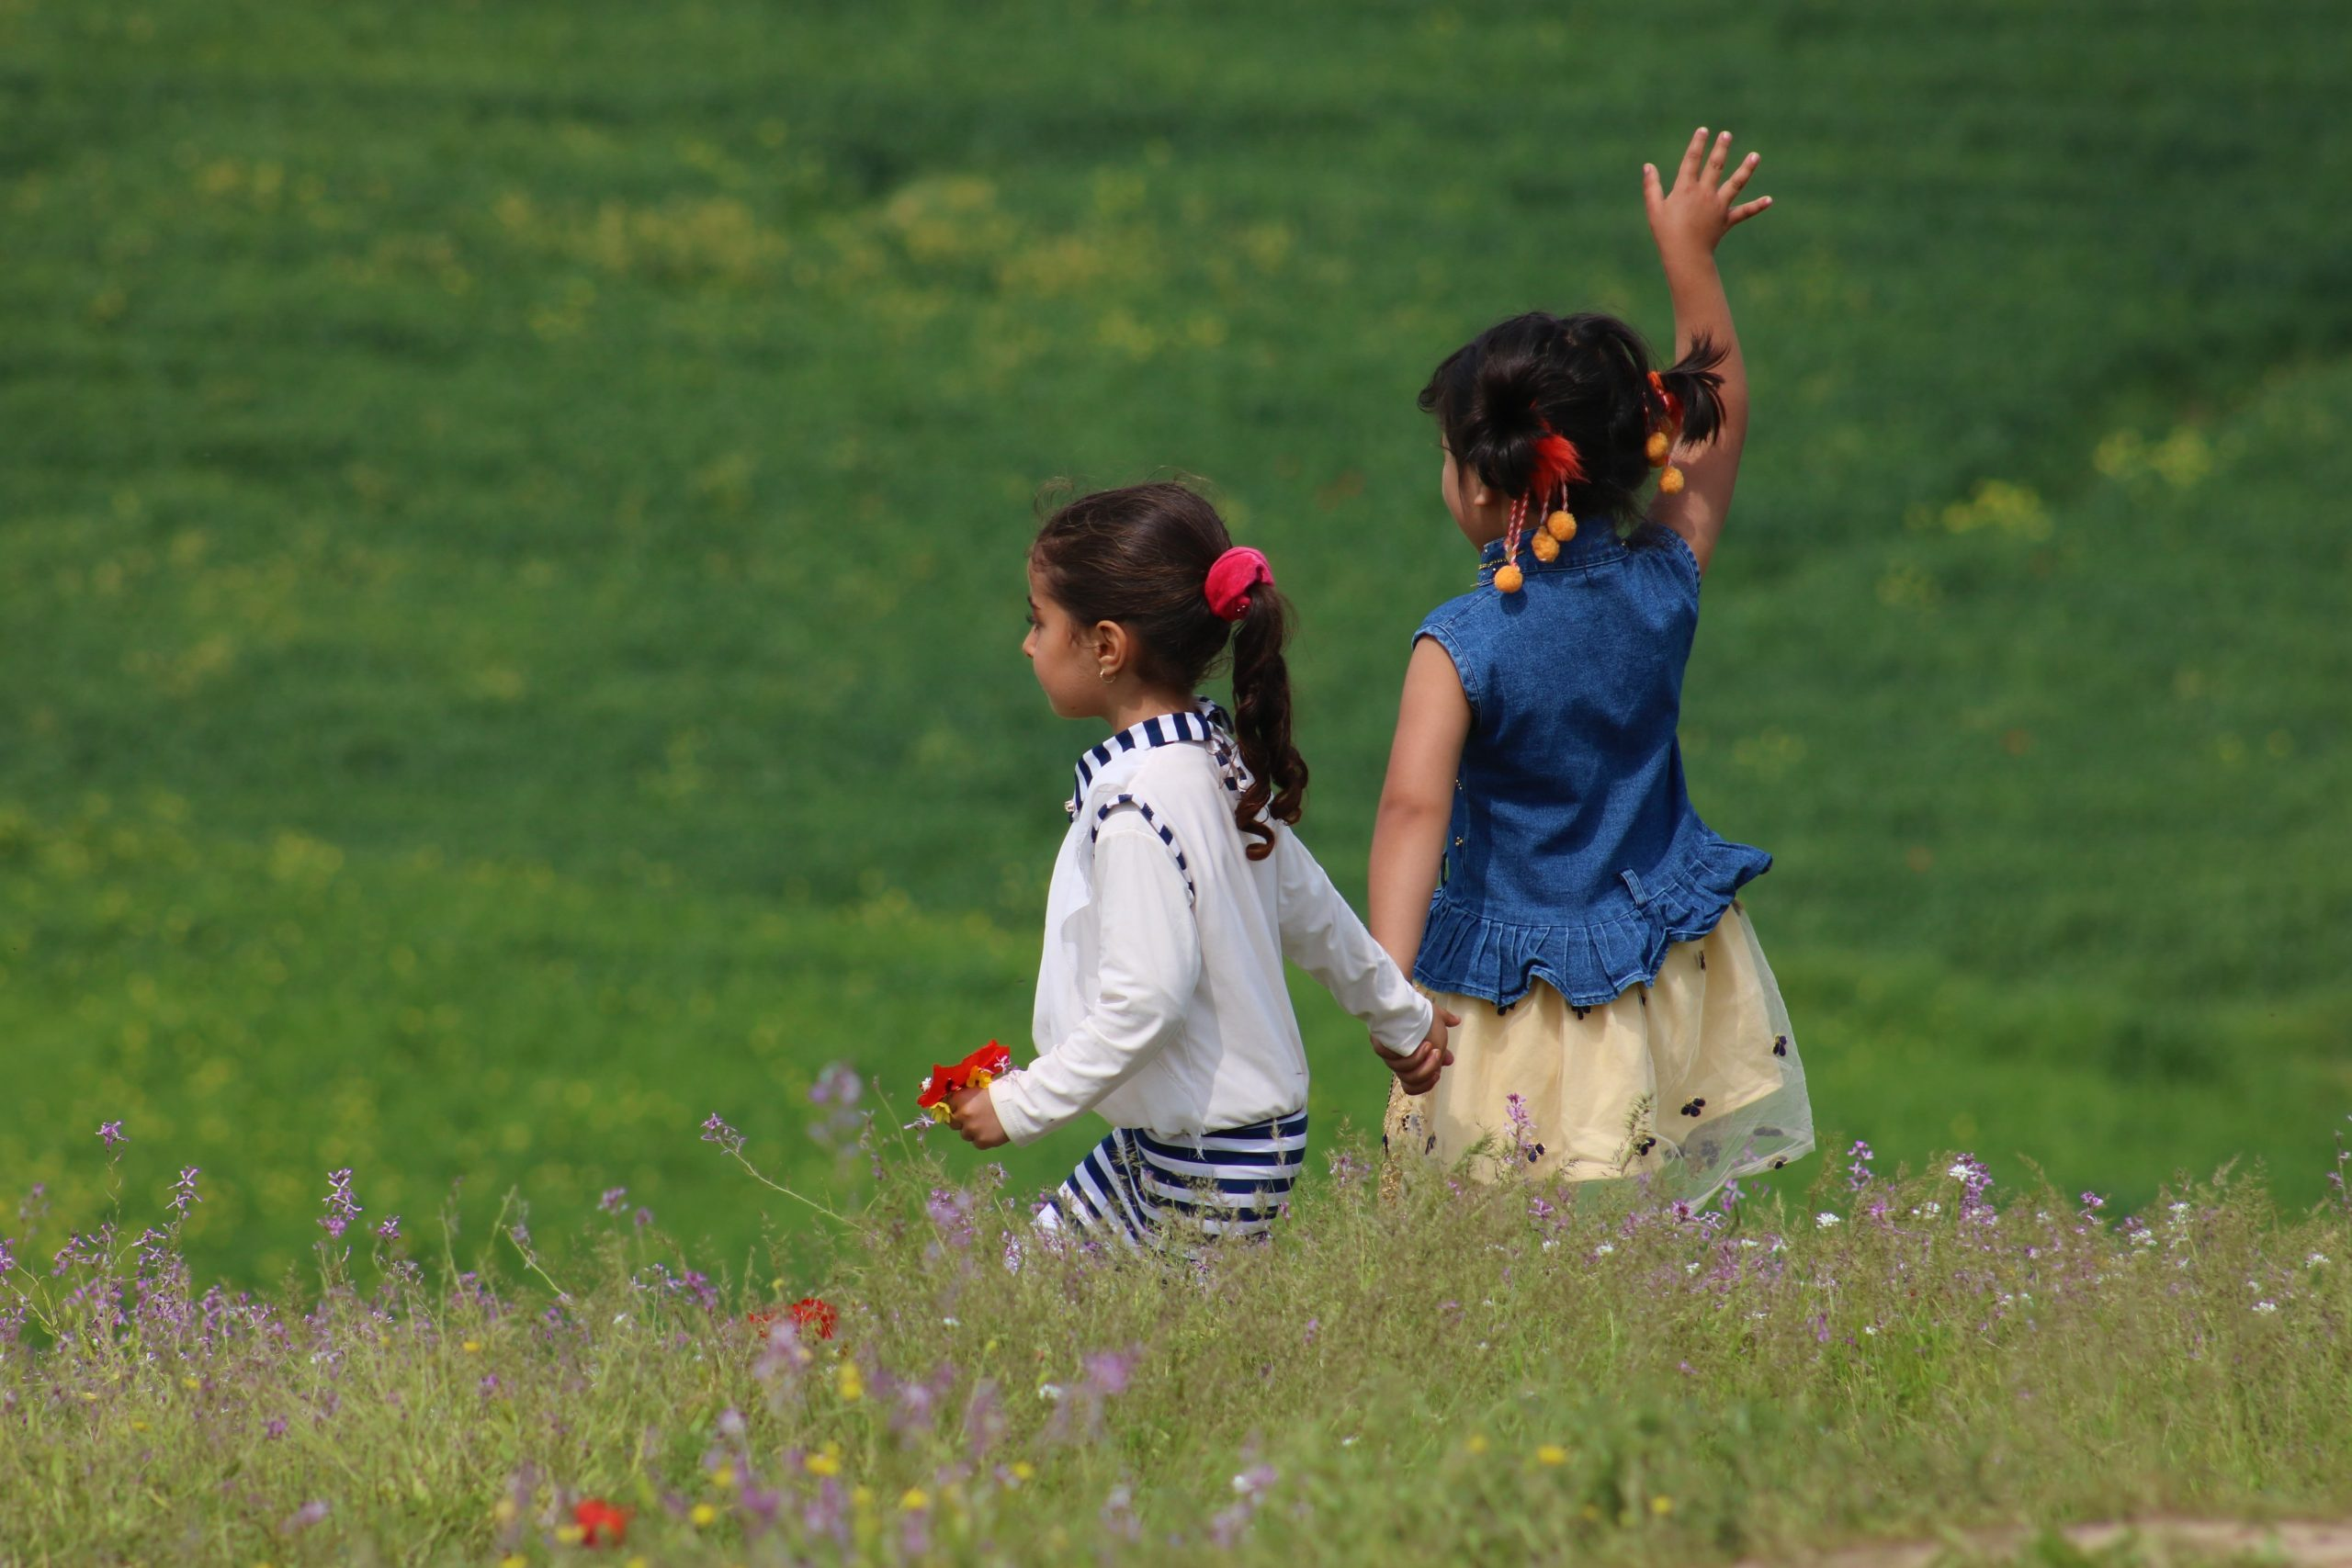 Two girls under age 5 holding hands in a field of wildflowers, facing away from the camera. One girl is waving.